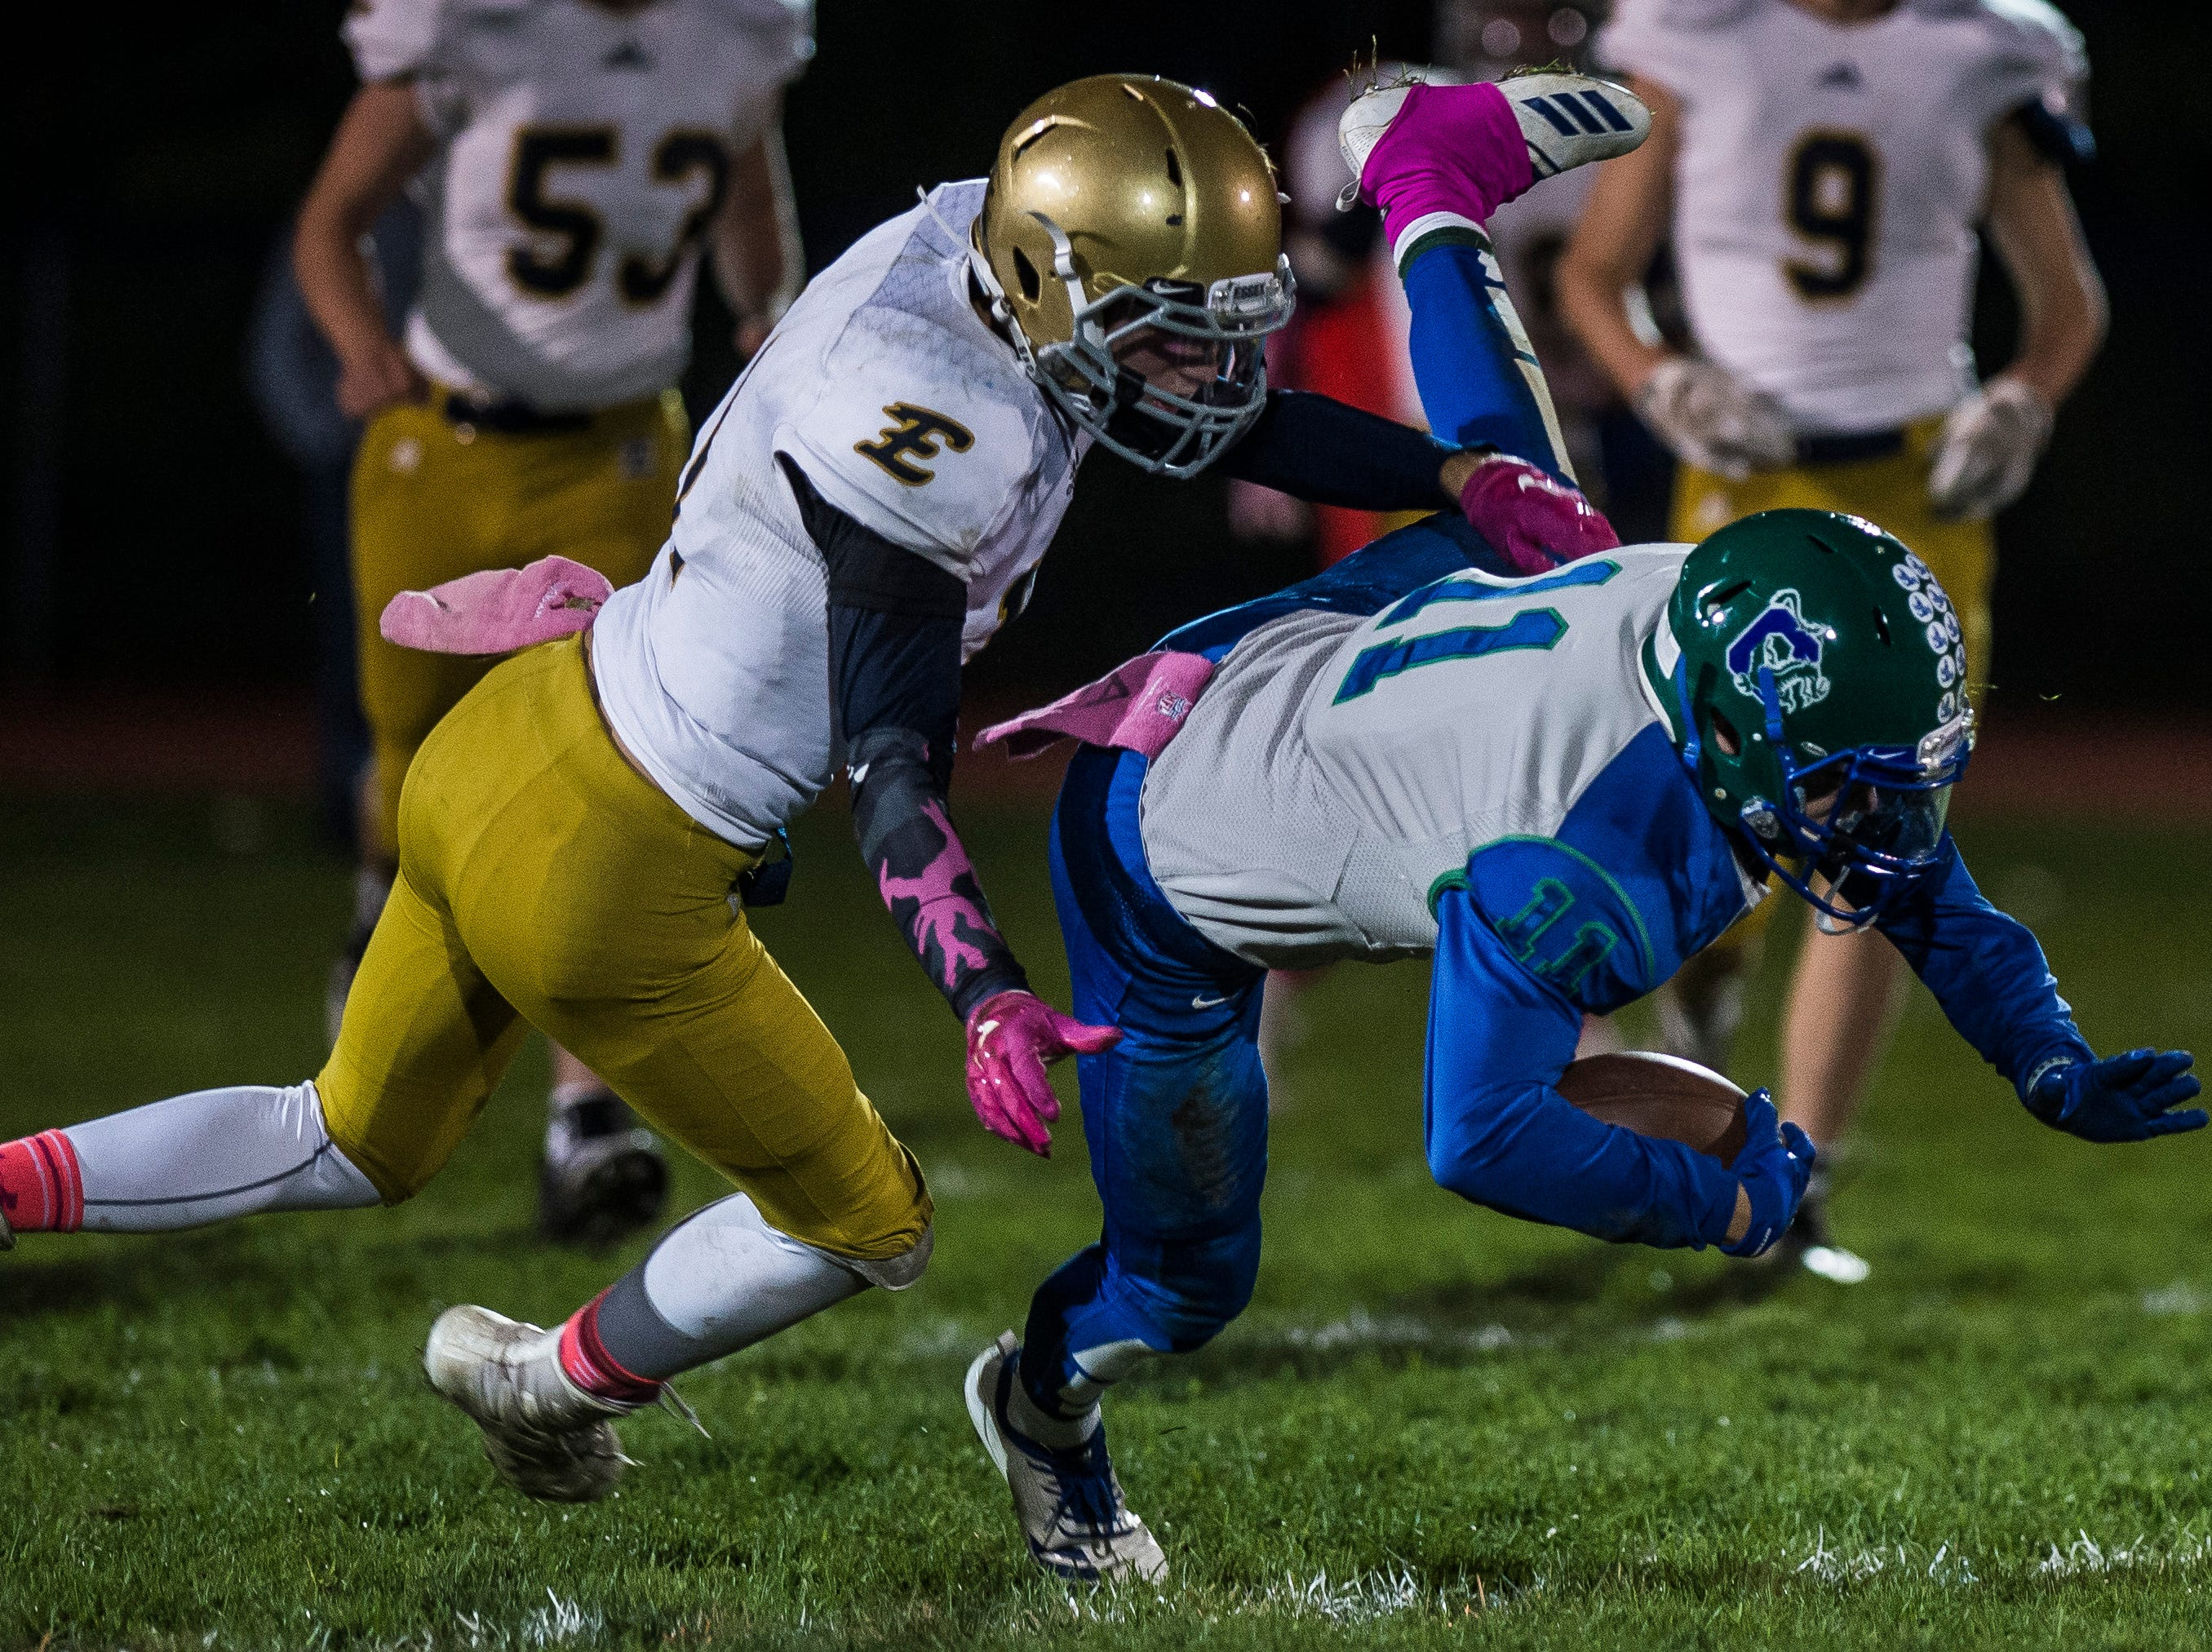 Colchester #11 Bailey Olson is chased down by Essex #11 Chris Labonte during their football game against Essex Friday night, Oct. 5, 2018, at Colchester High School. The Lakers won, 28-7.